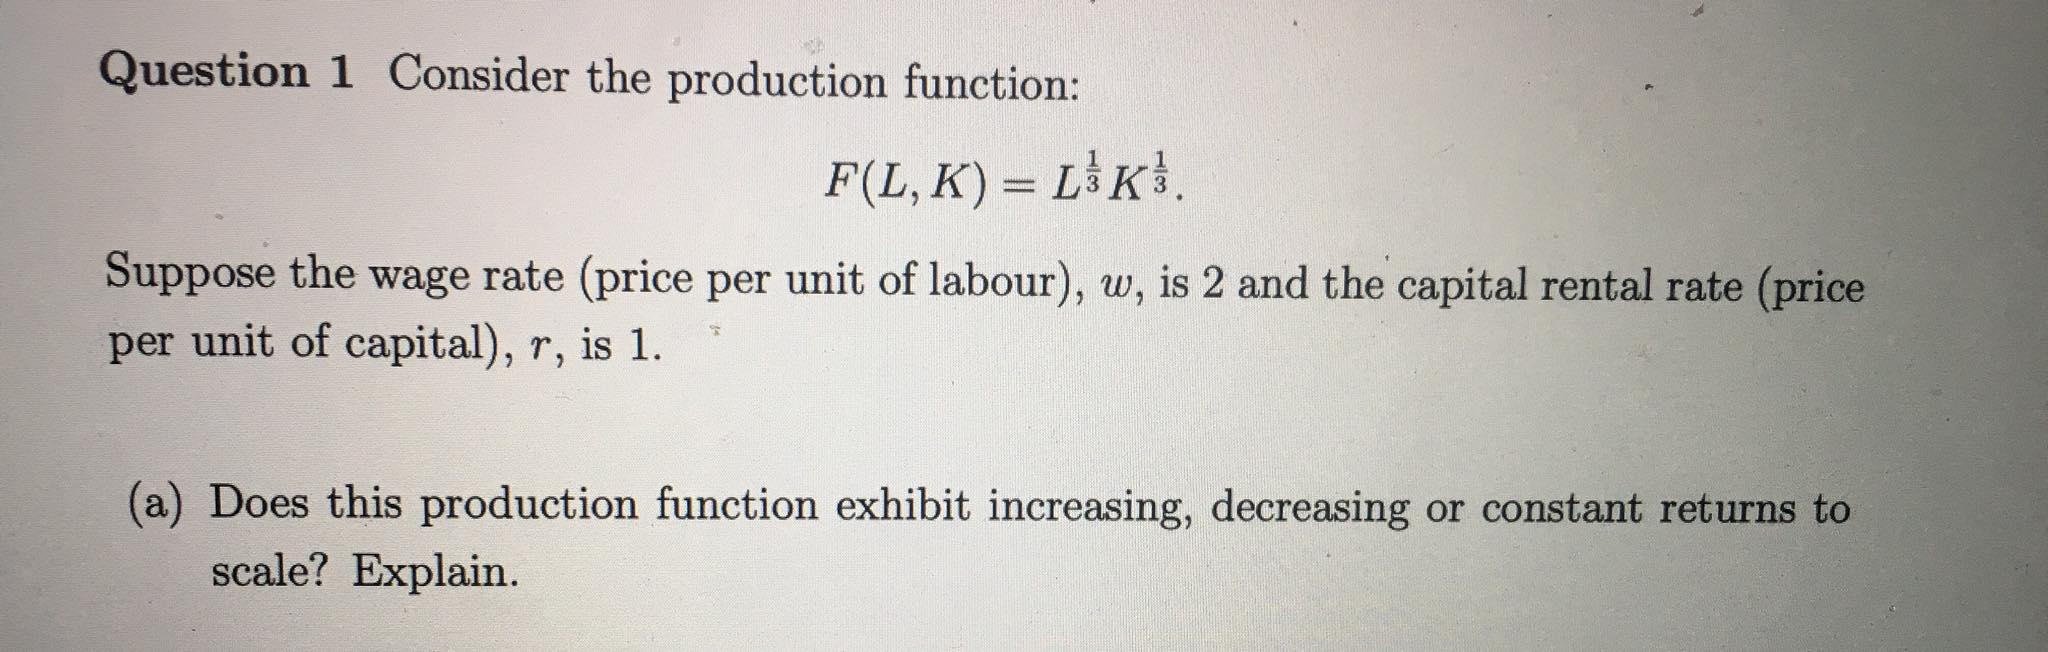 Question 1 Consider the production function: F(L,K) = ($). Suppose the wage rate (price per unit of labour), w, is 2 and the